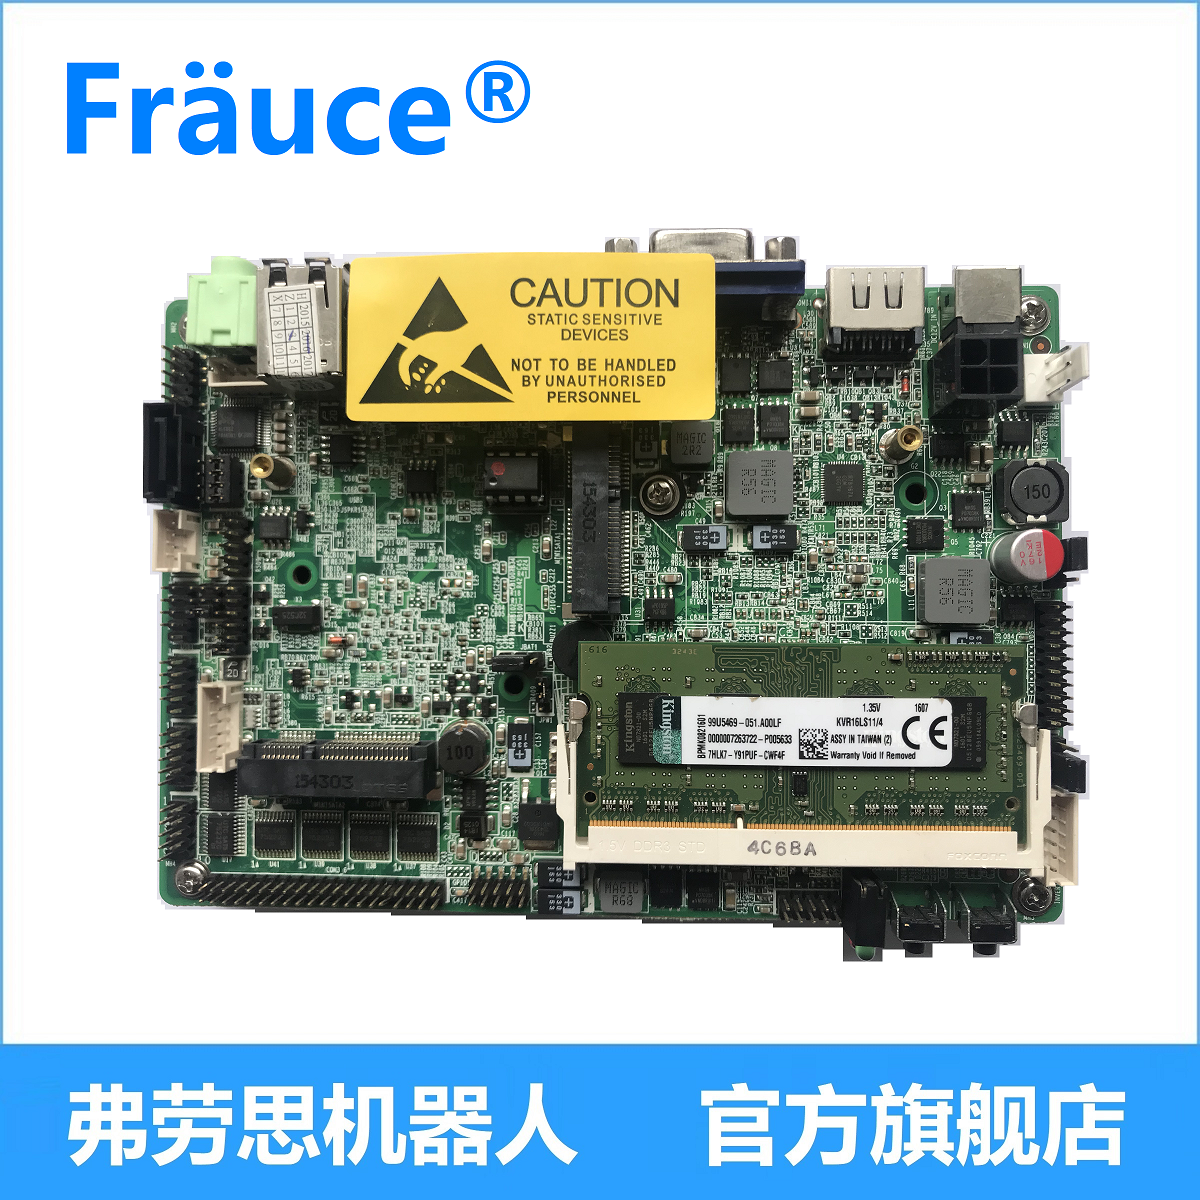 Frauce Flowers Robot FRC5 Control Cabinet Main Control Board DSQC639 Main Industrial Computer